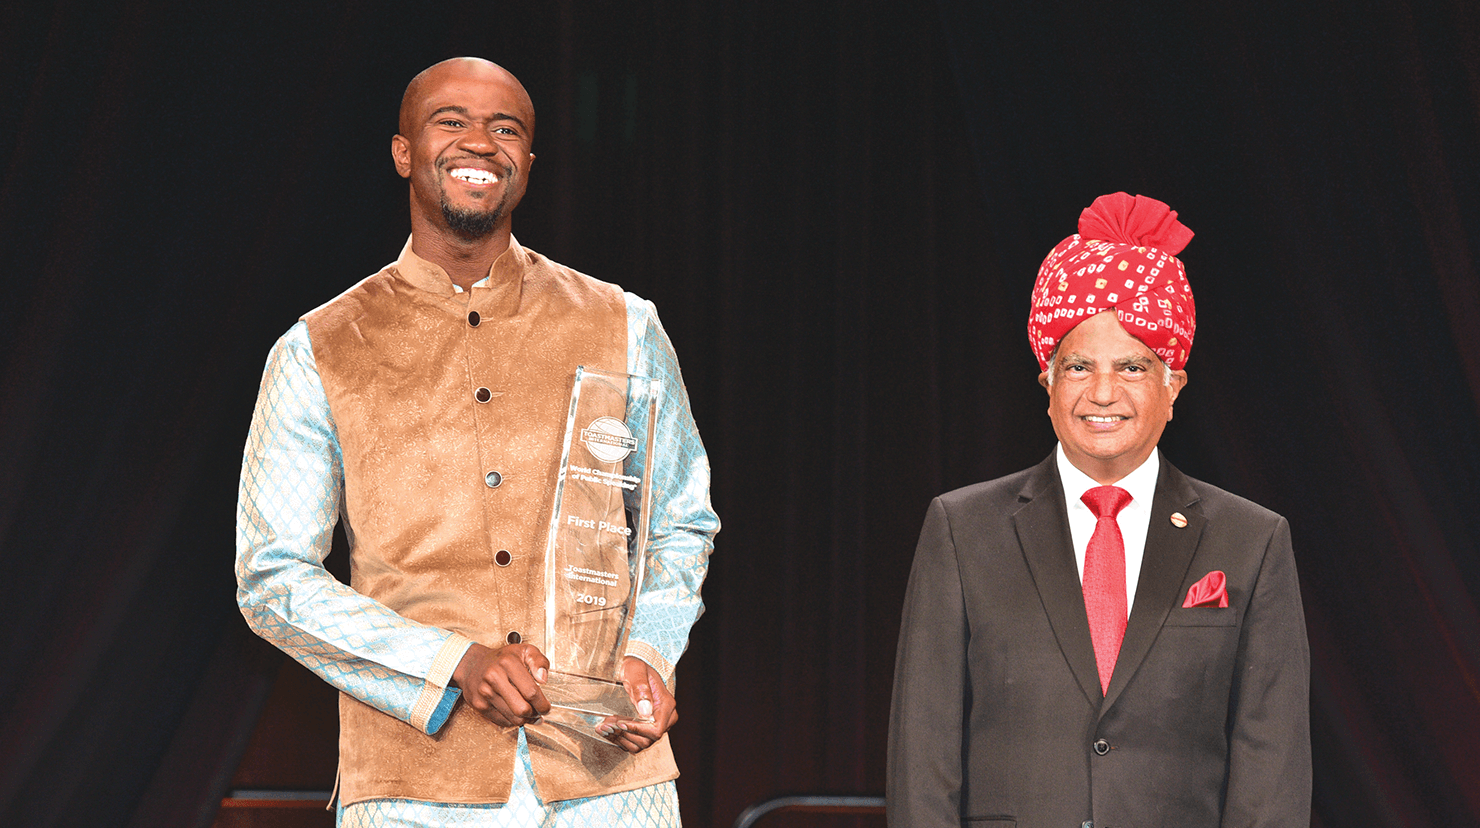 Beverly reacts happily after being announced by International President Deepak Menon (right) as the 2019 World Champion of Public Speaking.